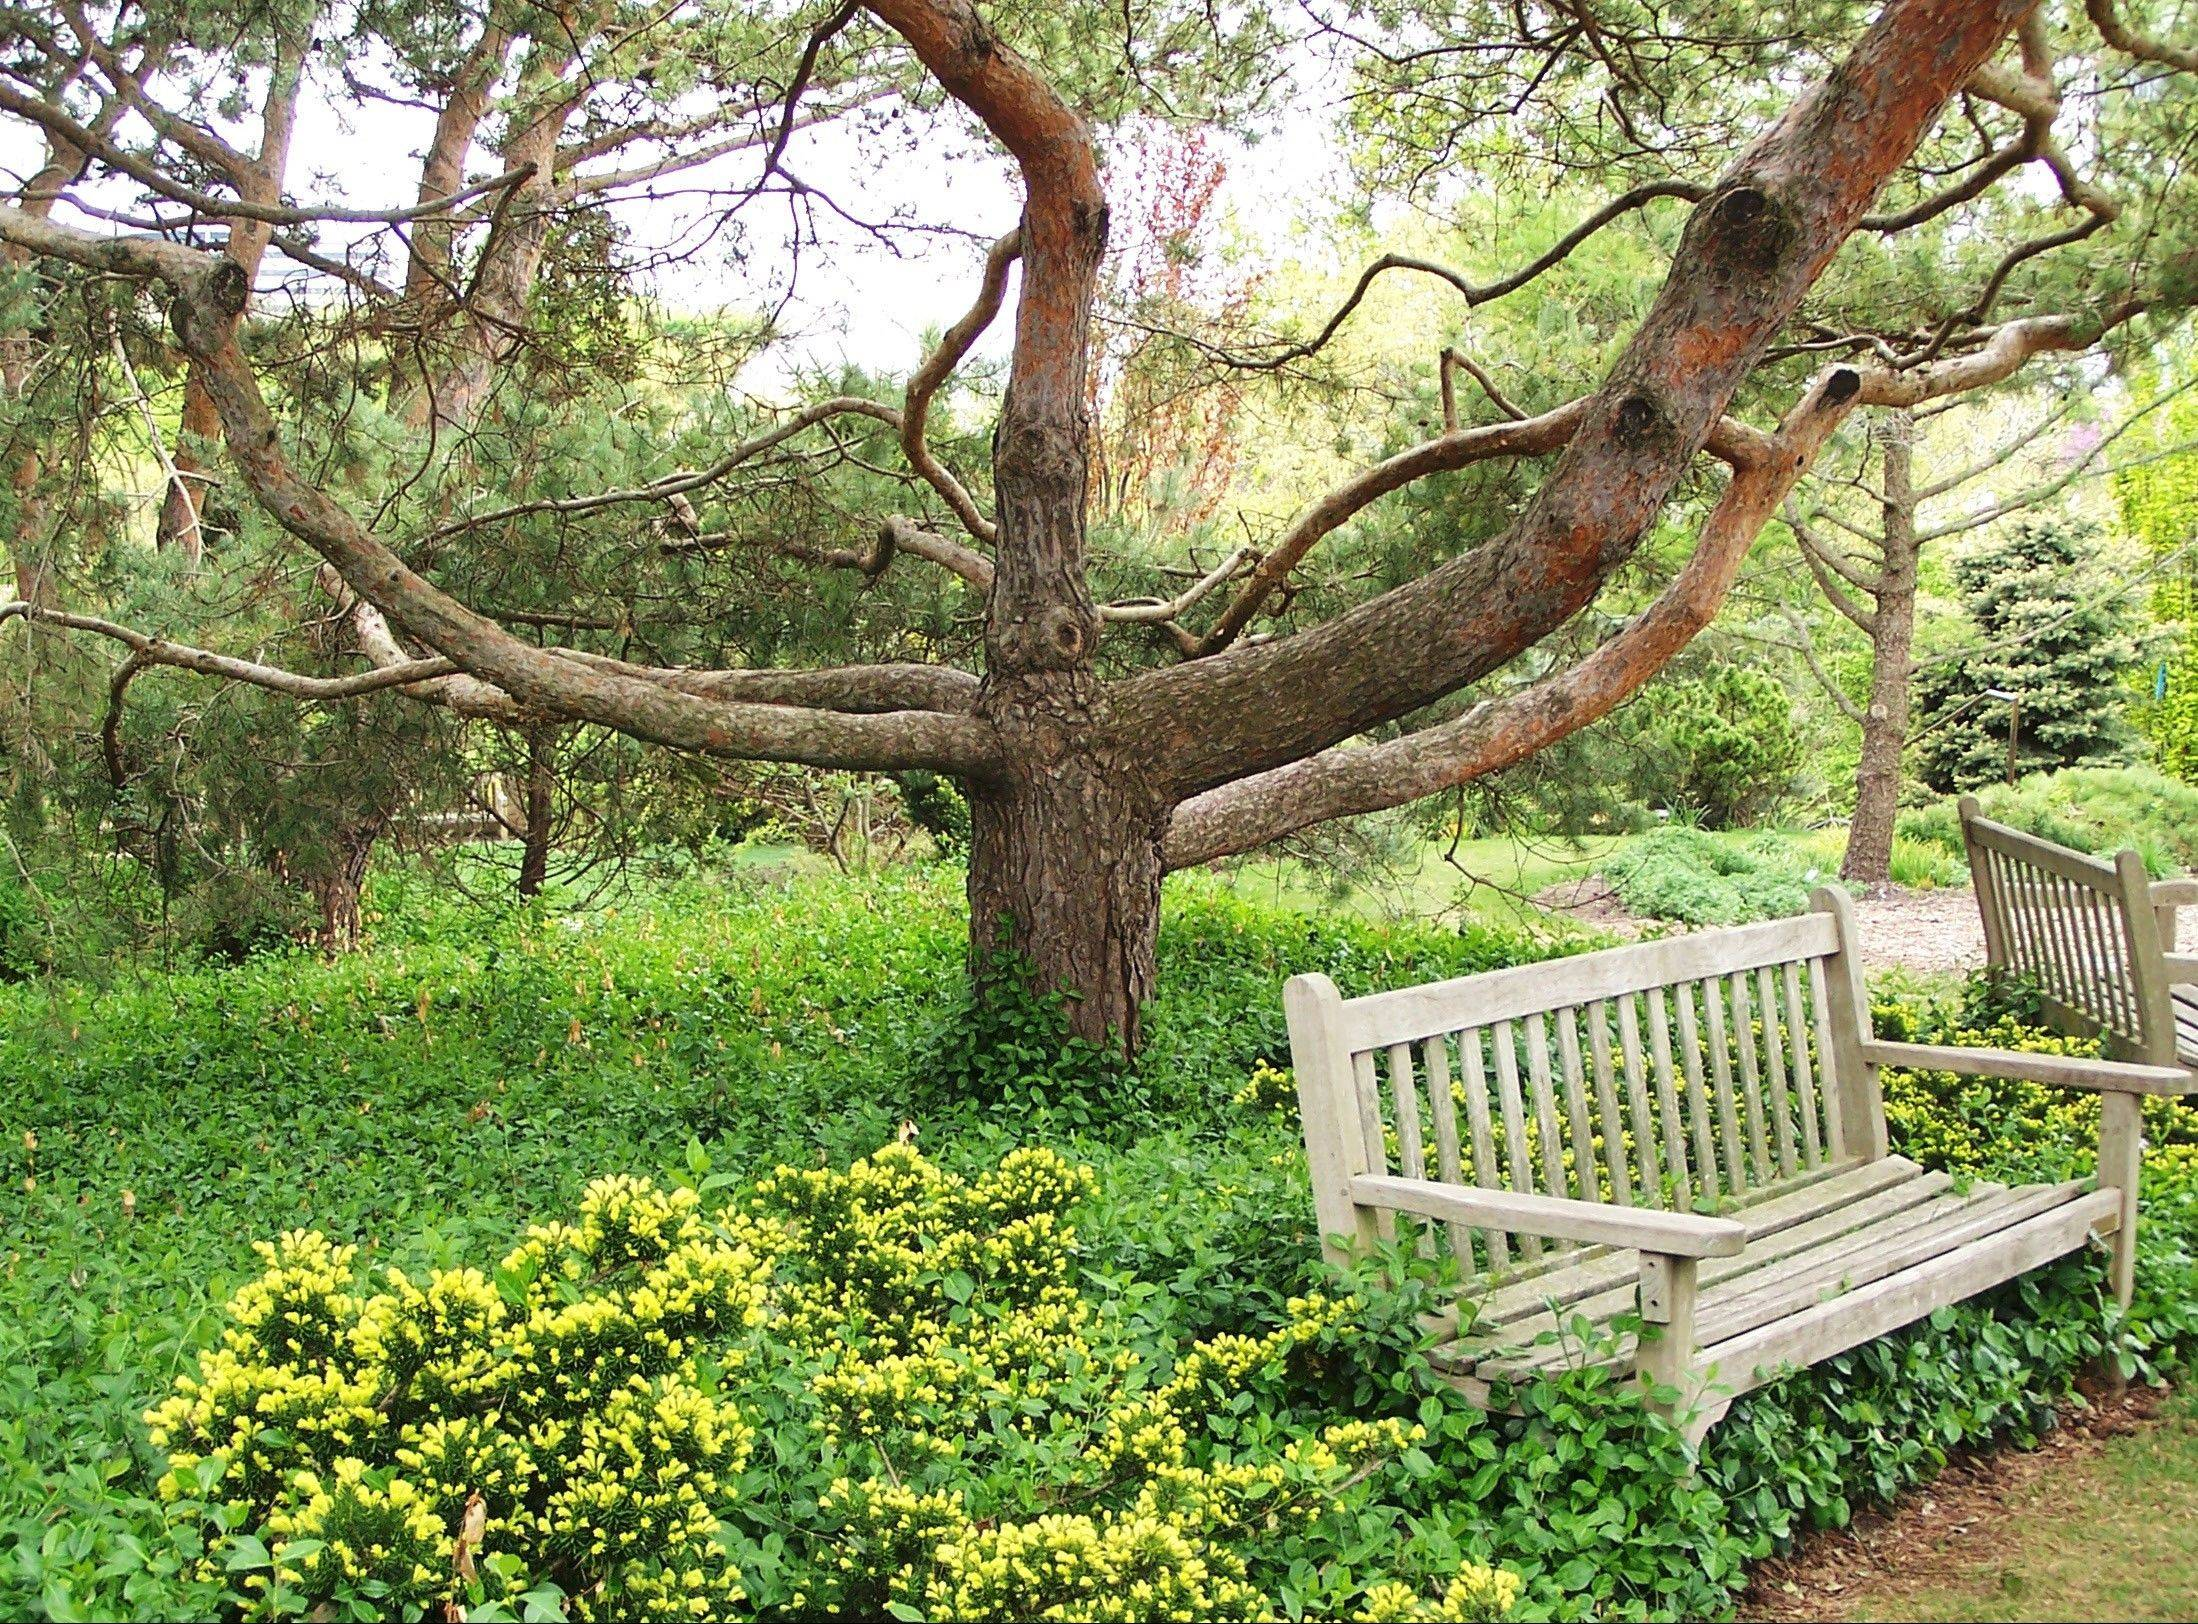 Art in the garden: Put trees first in design plans